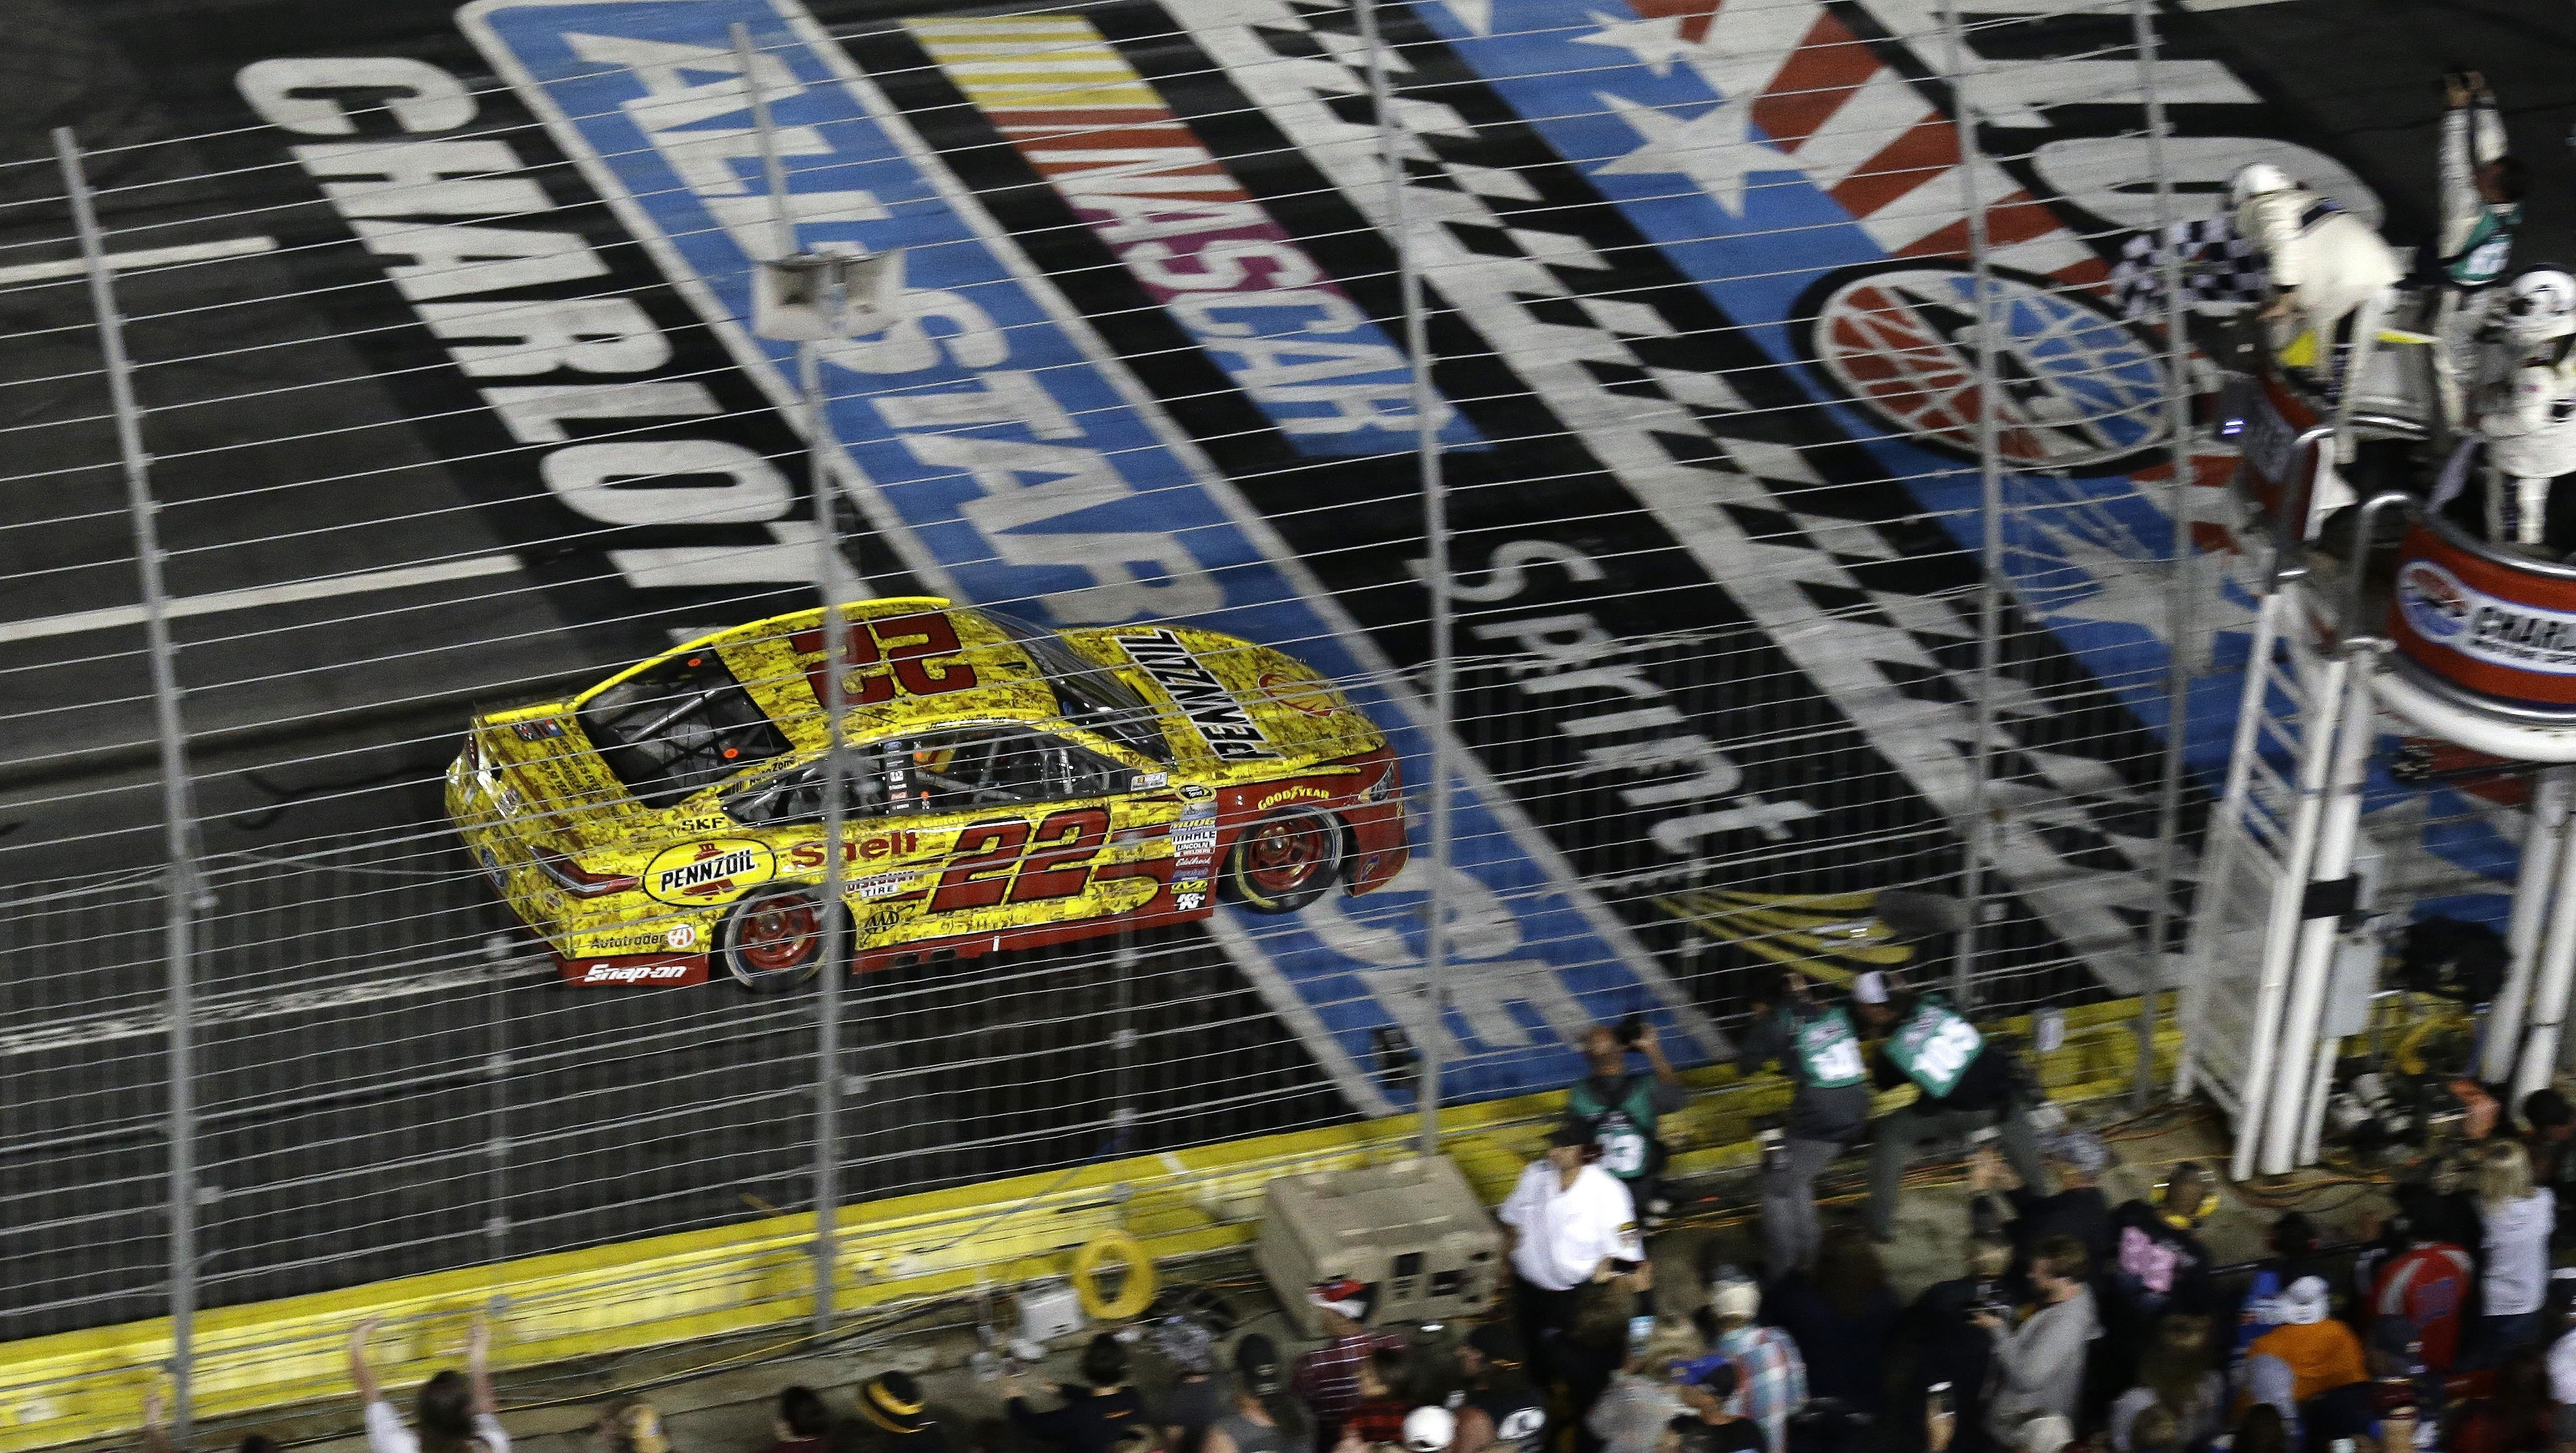 Joey Logano (22) approaches the checkered flag to win the NASCAR Sprint All-Star auto race at Charlotte Motor Speedway in Concord, N.C., Saturday, May 21, 2016. (AP Photo/Gerry Broome)